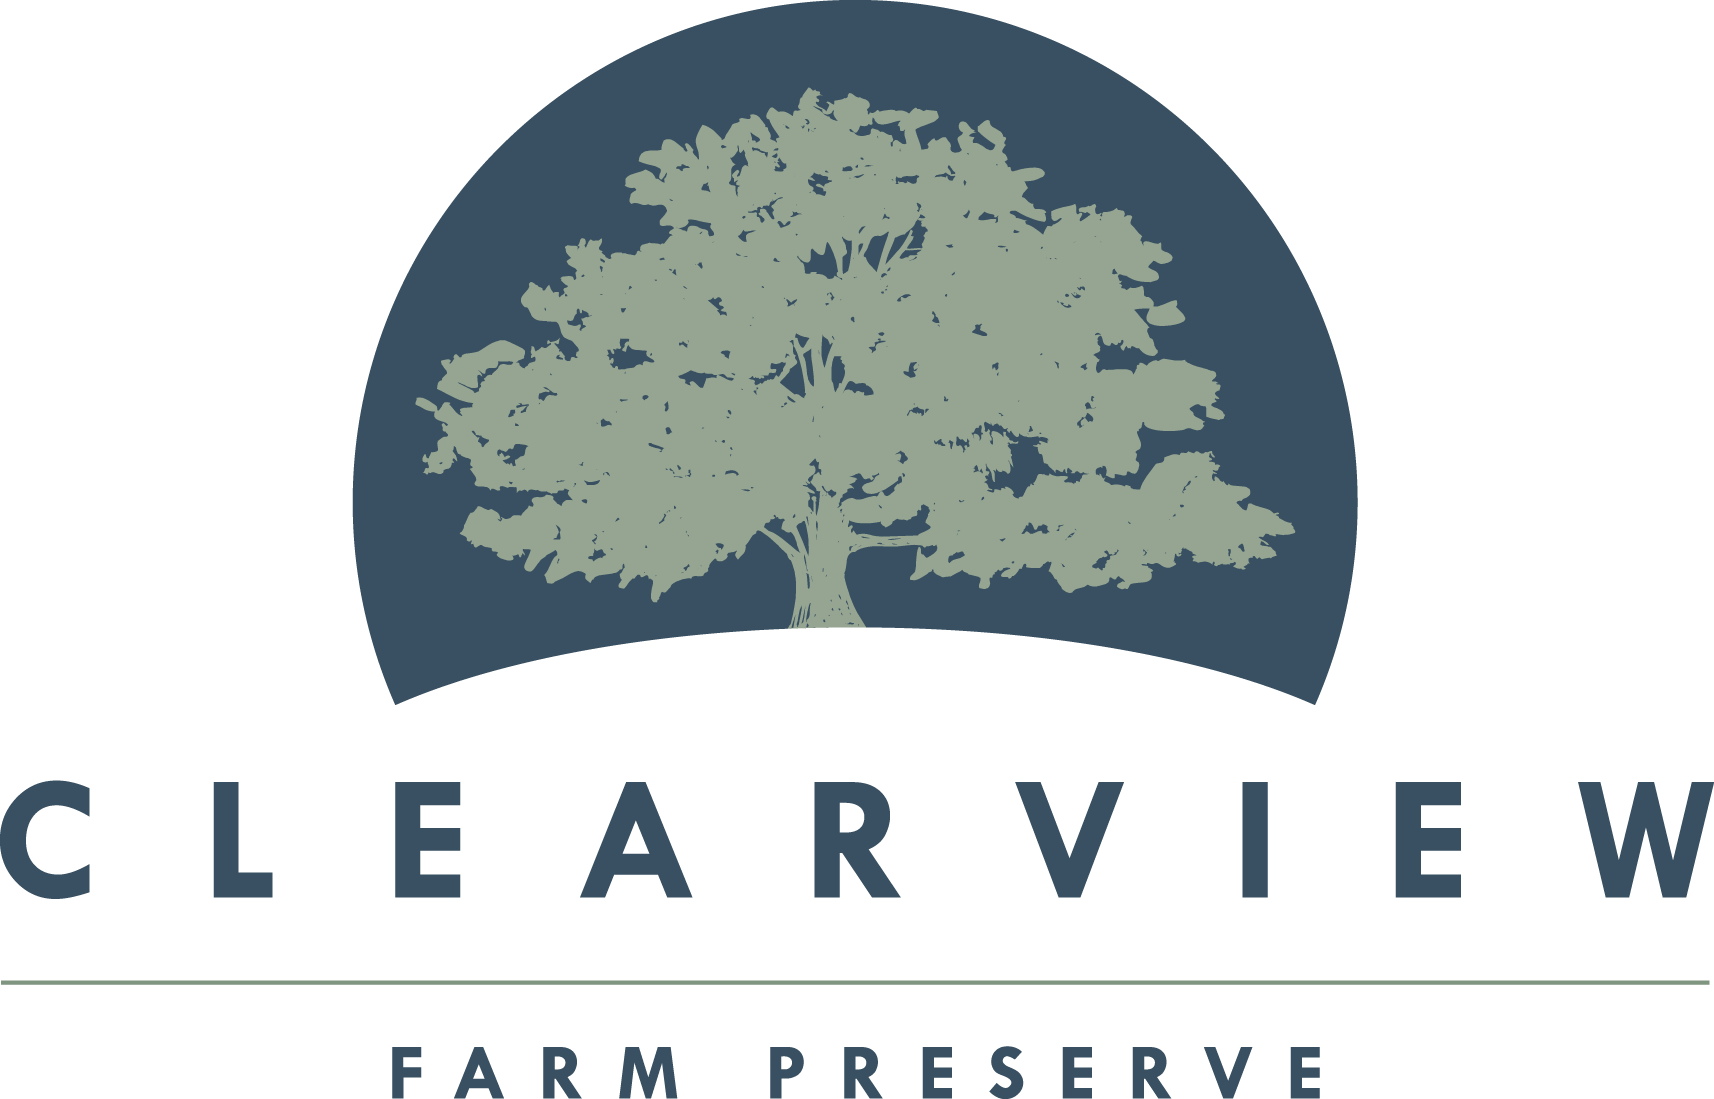 Clearview Farm Preserve logo